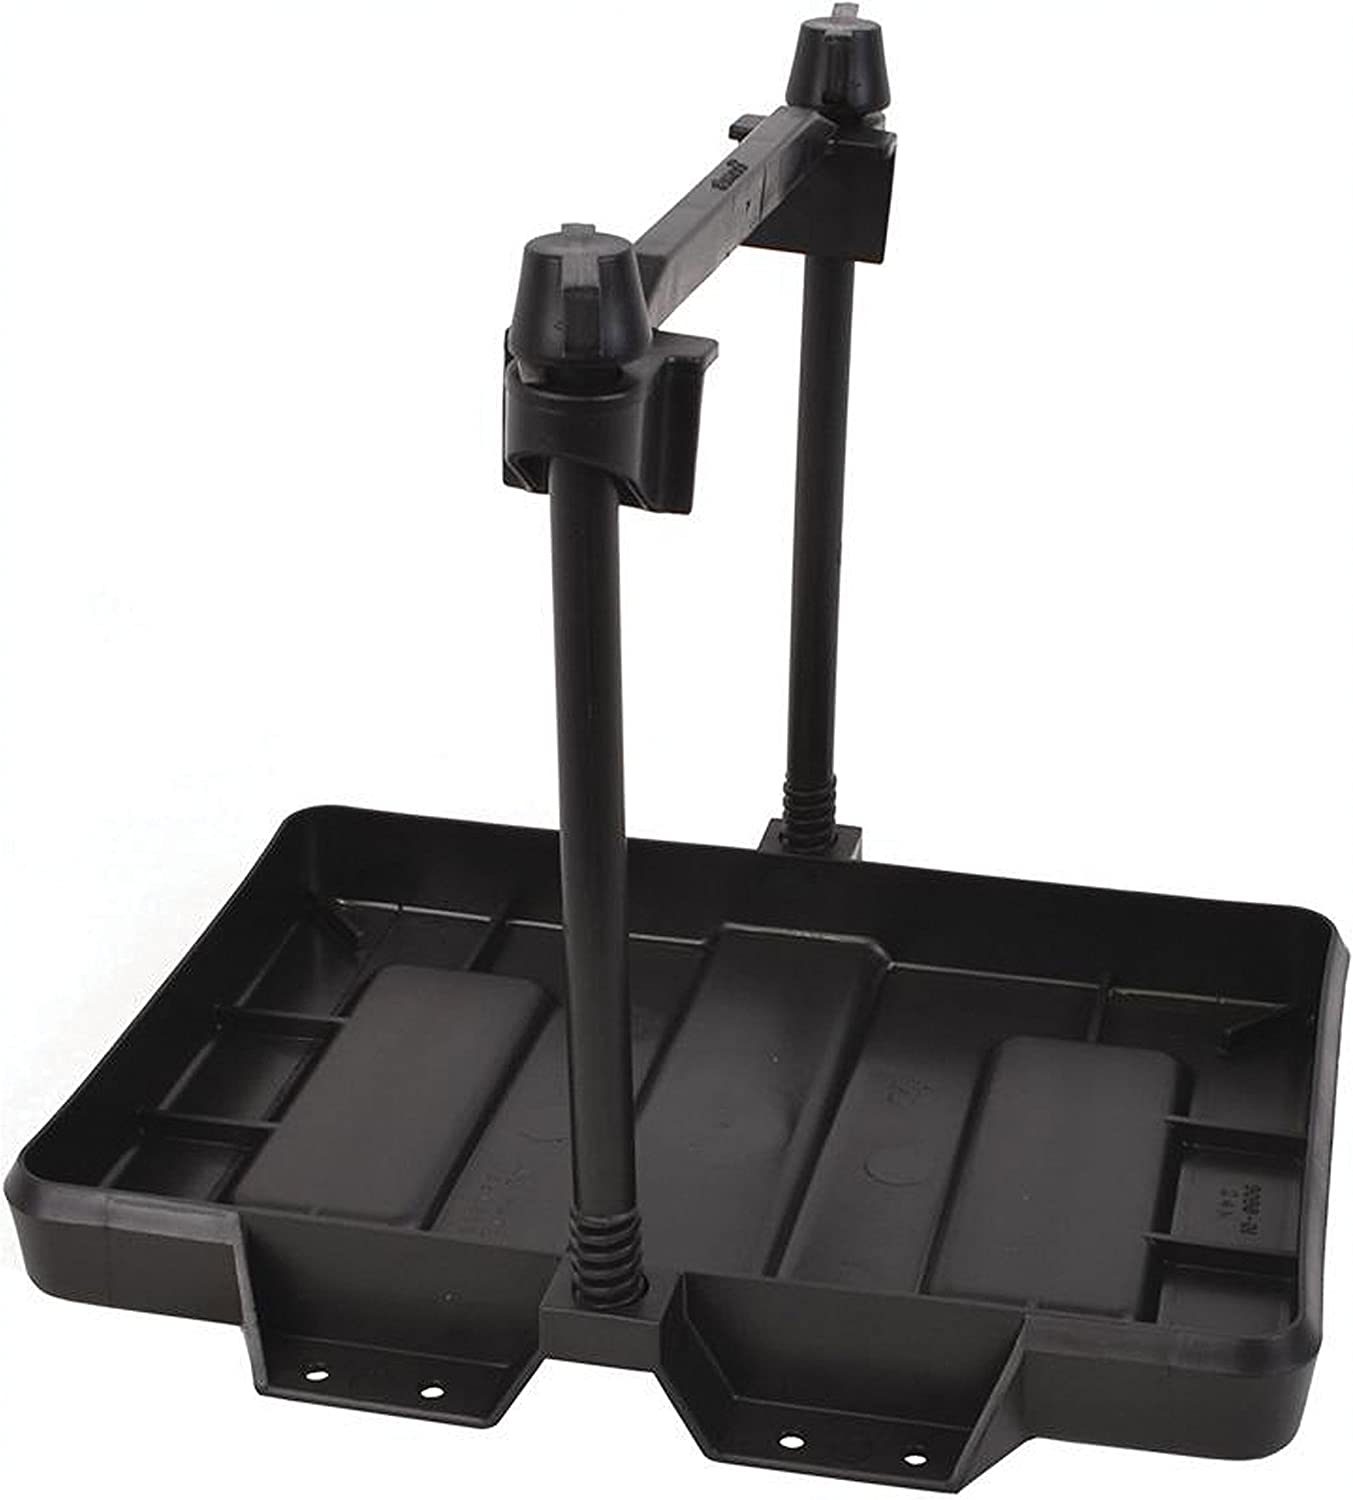 ATTWOOD MARINE 9097-5 ATTWOOD ALL-PLASTIC GROUP 24 HD BATTERY TRAY